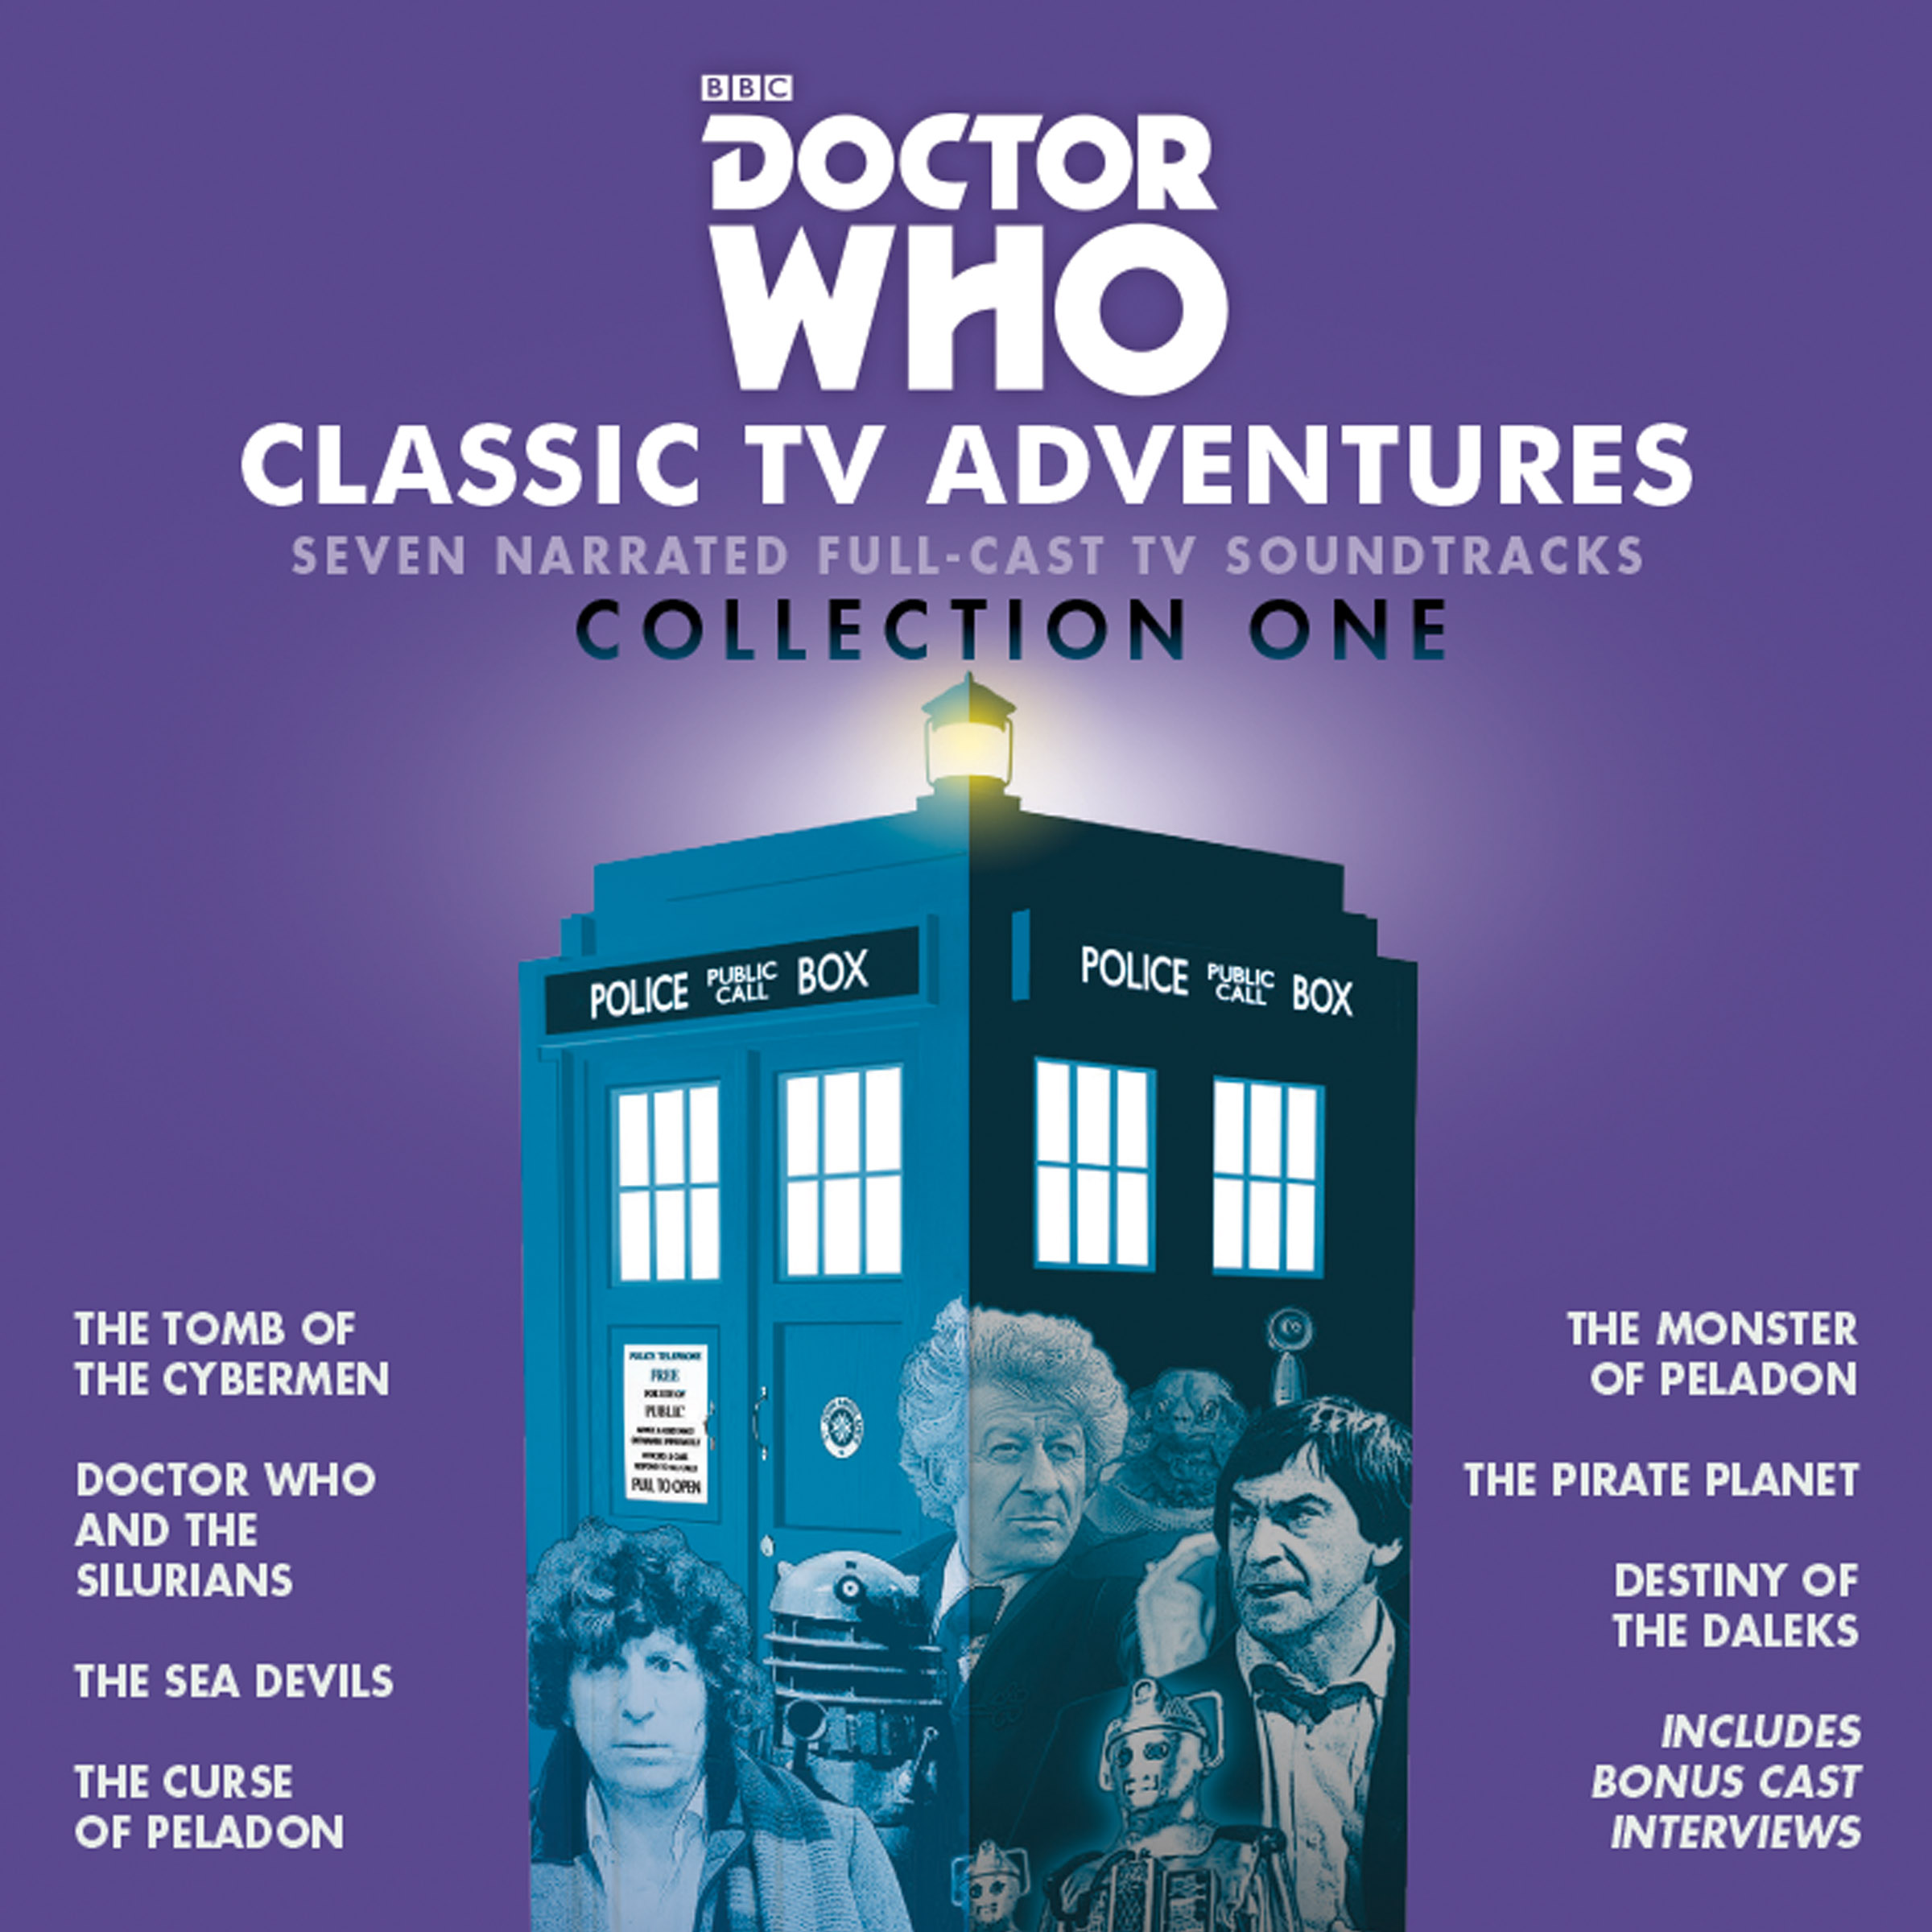 Doctor Who: Classic TV Adventures - Collection One (Credit: BBC Audio)